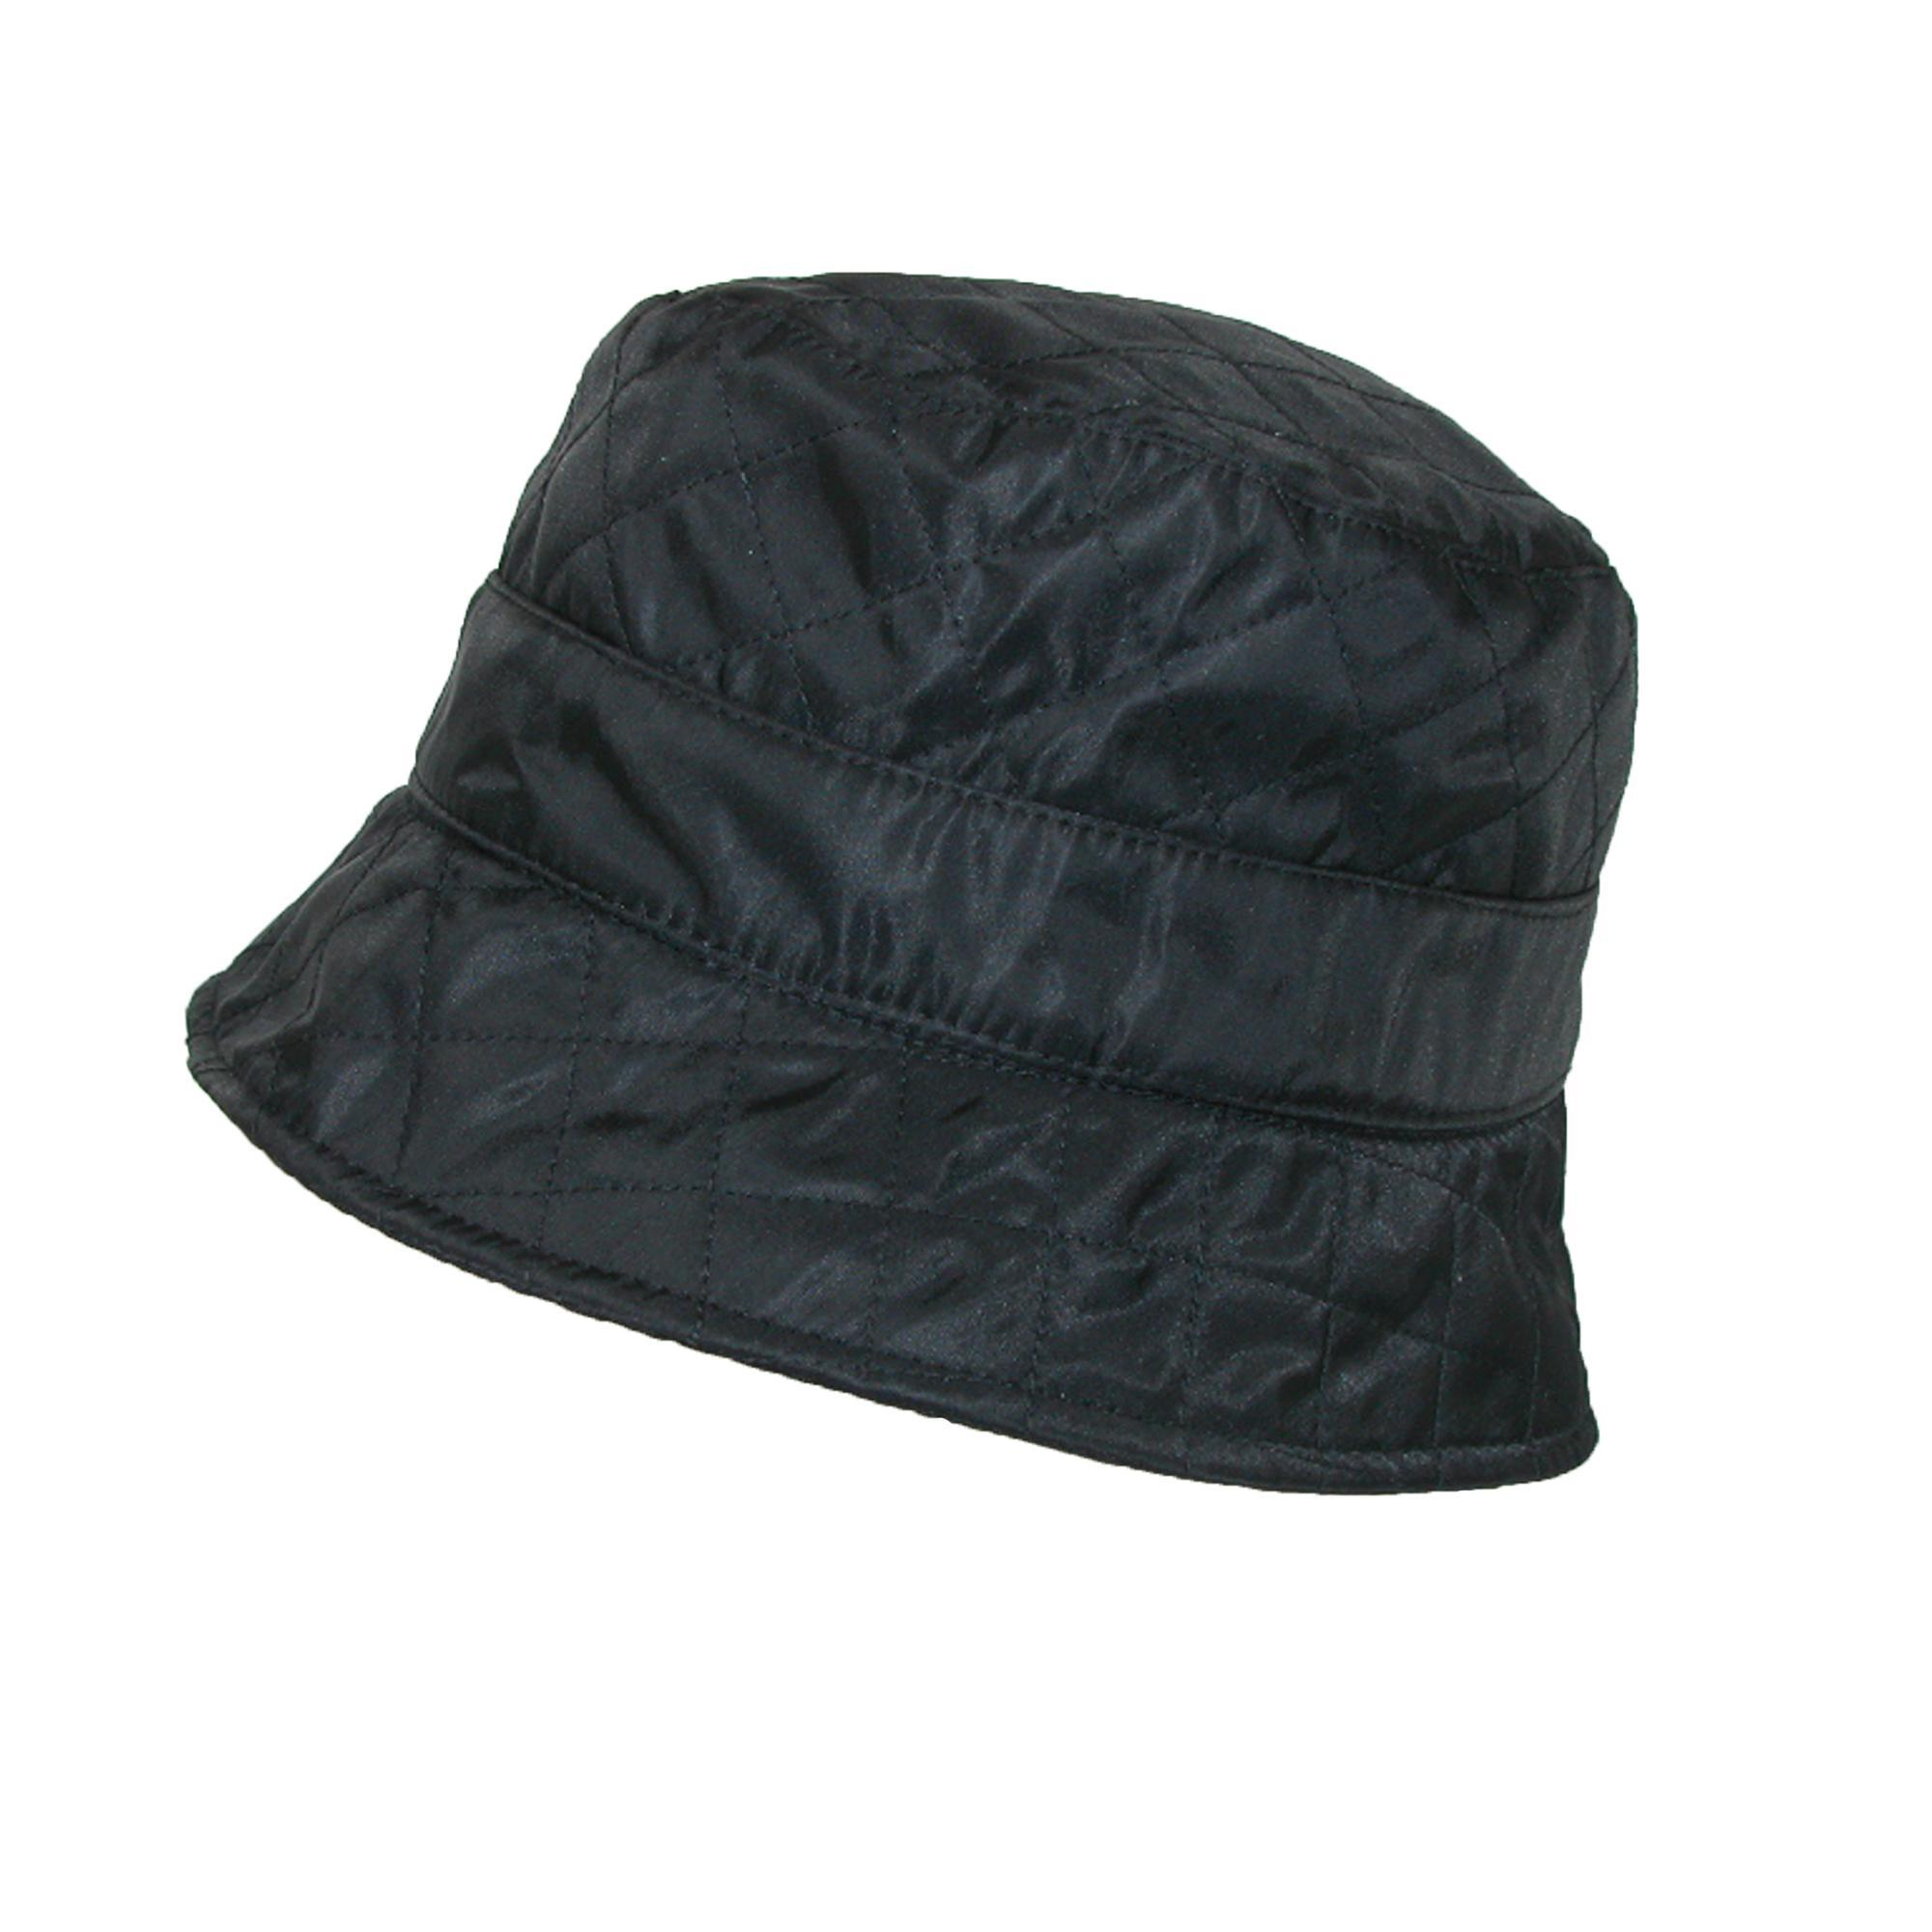 03c0145c3a3 Details about New Betmar Women s Nylon Quilted Waterproof Bucket Rain Hat